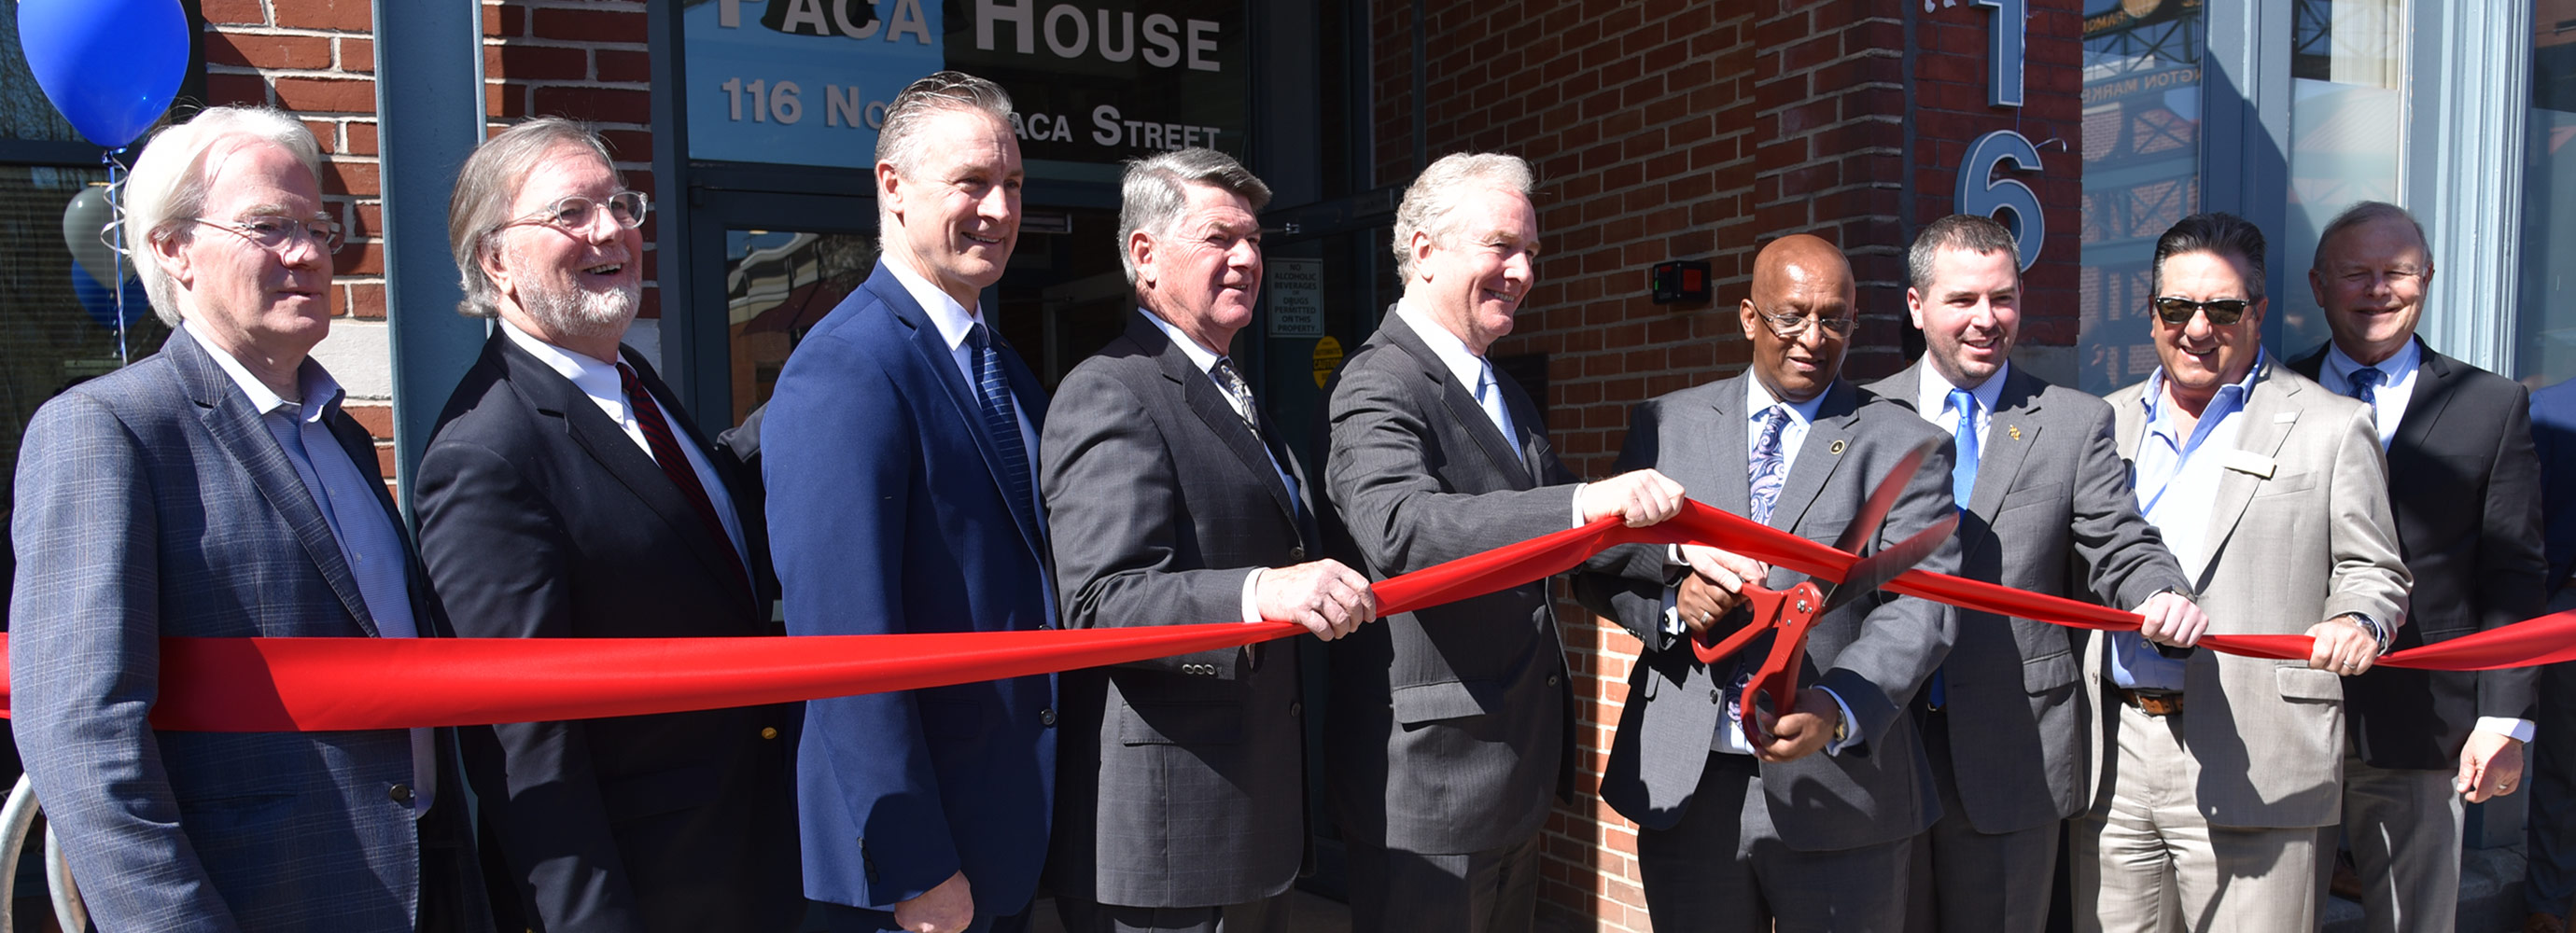 Group cuts ribbon on affordable housing project in Baltimore